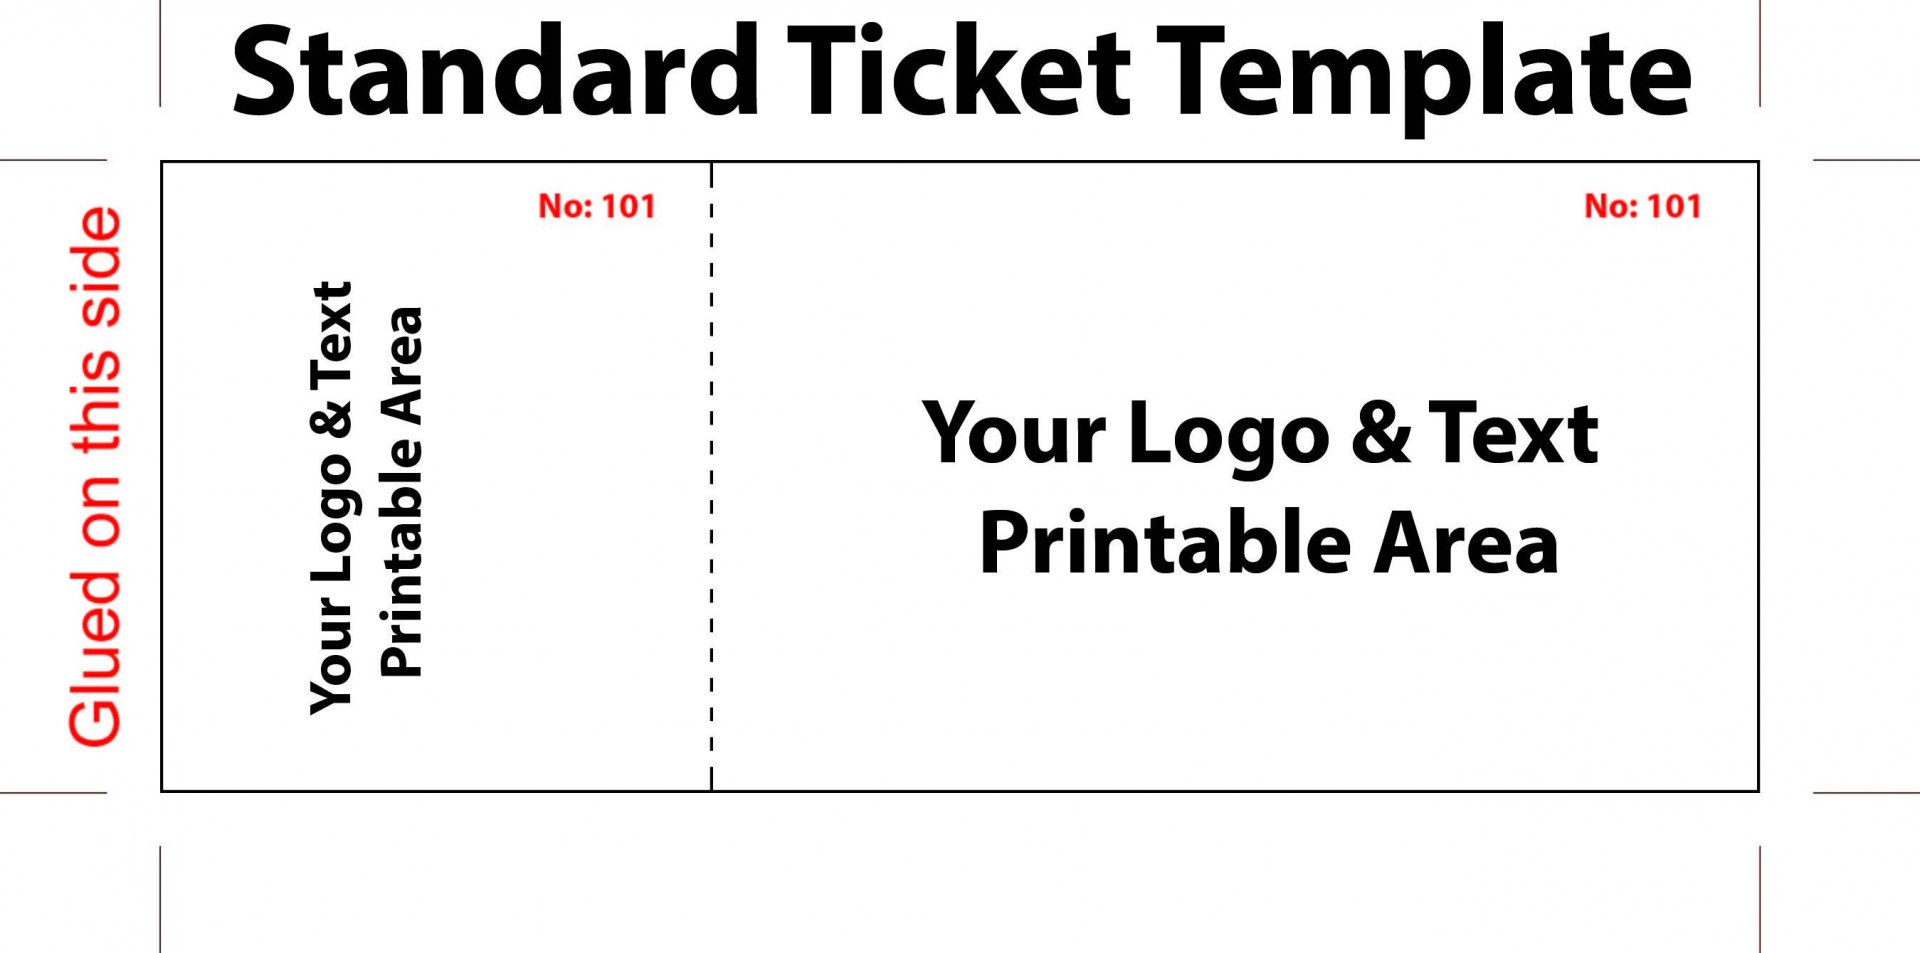 007 Staggering Concert Ticket Template Free Printable Image  Gift1920